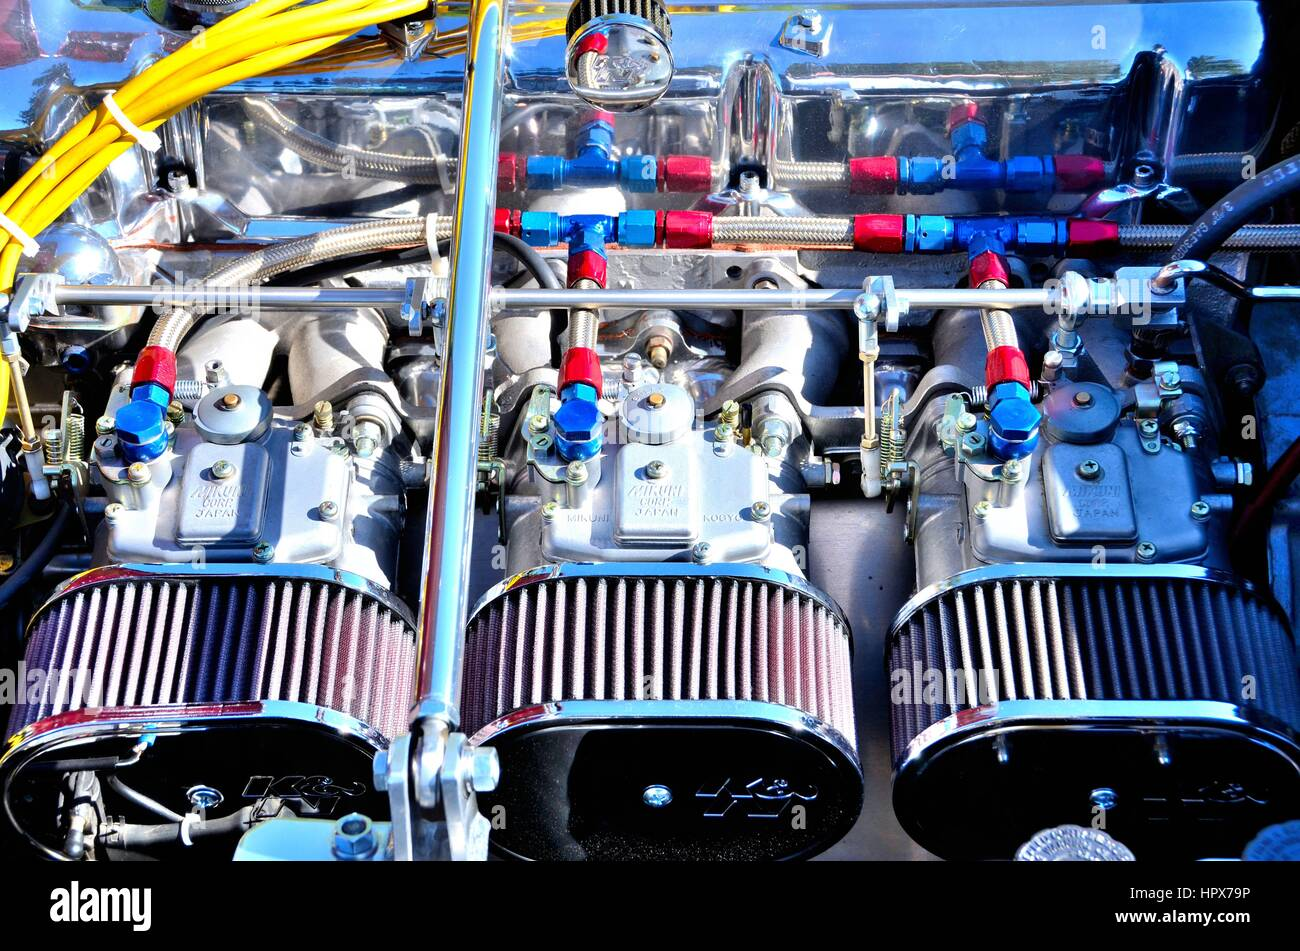 Internal Combustion Engine Stock Photos & Internal Combustion Engine ...